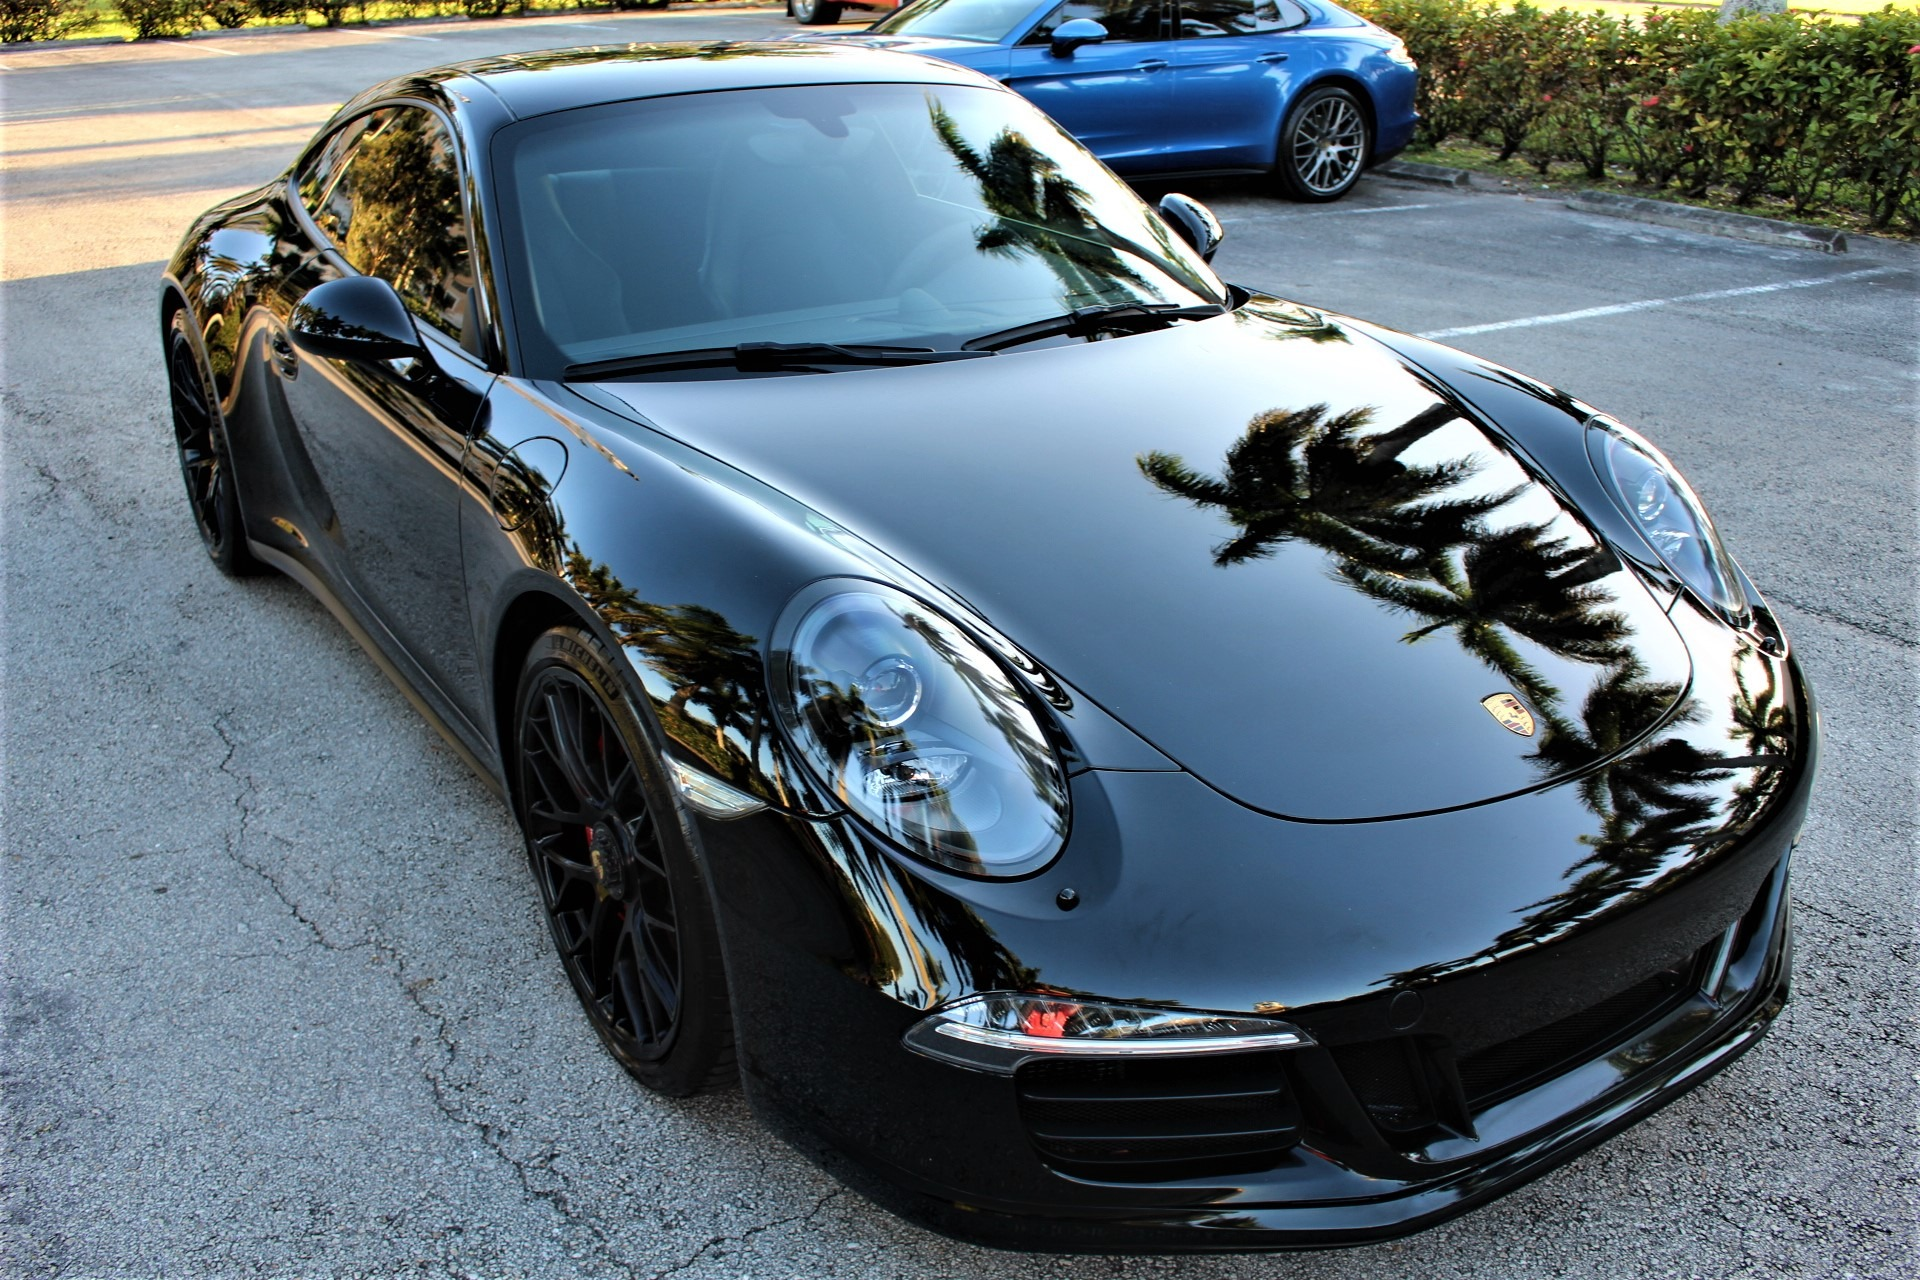 Used 2015 Porsche 911 Carrera GTS for sale $92,850 at The Gables Sports Cars in Miami FL 33146 2